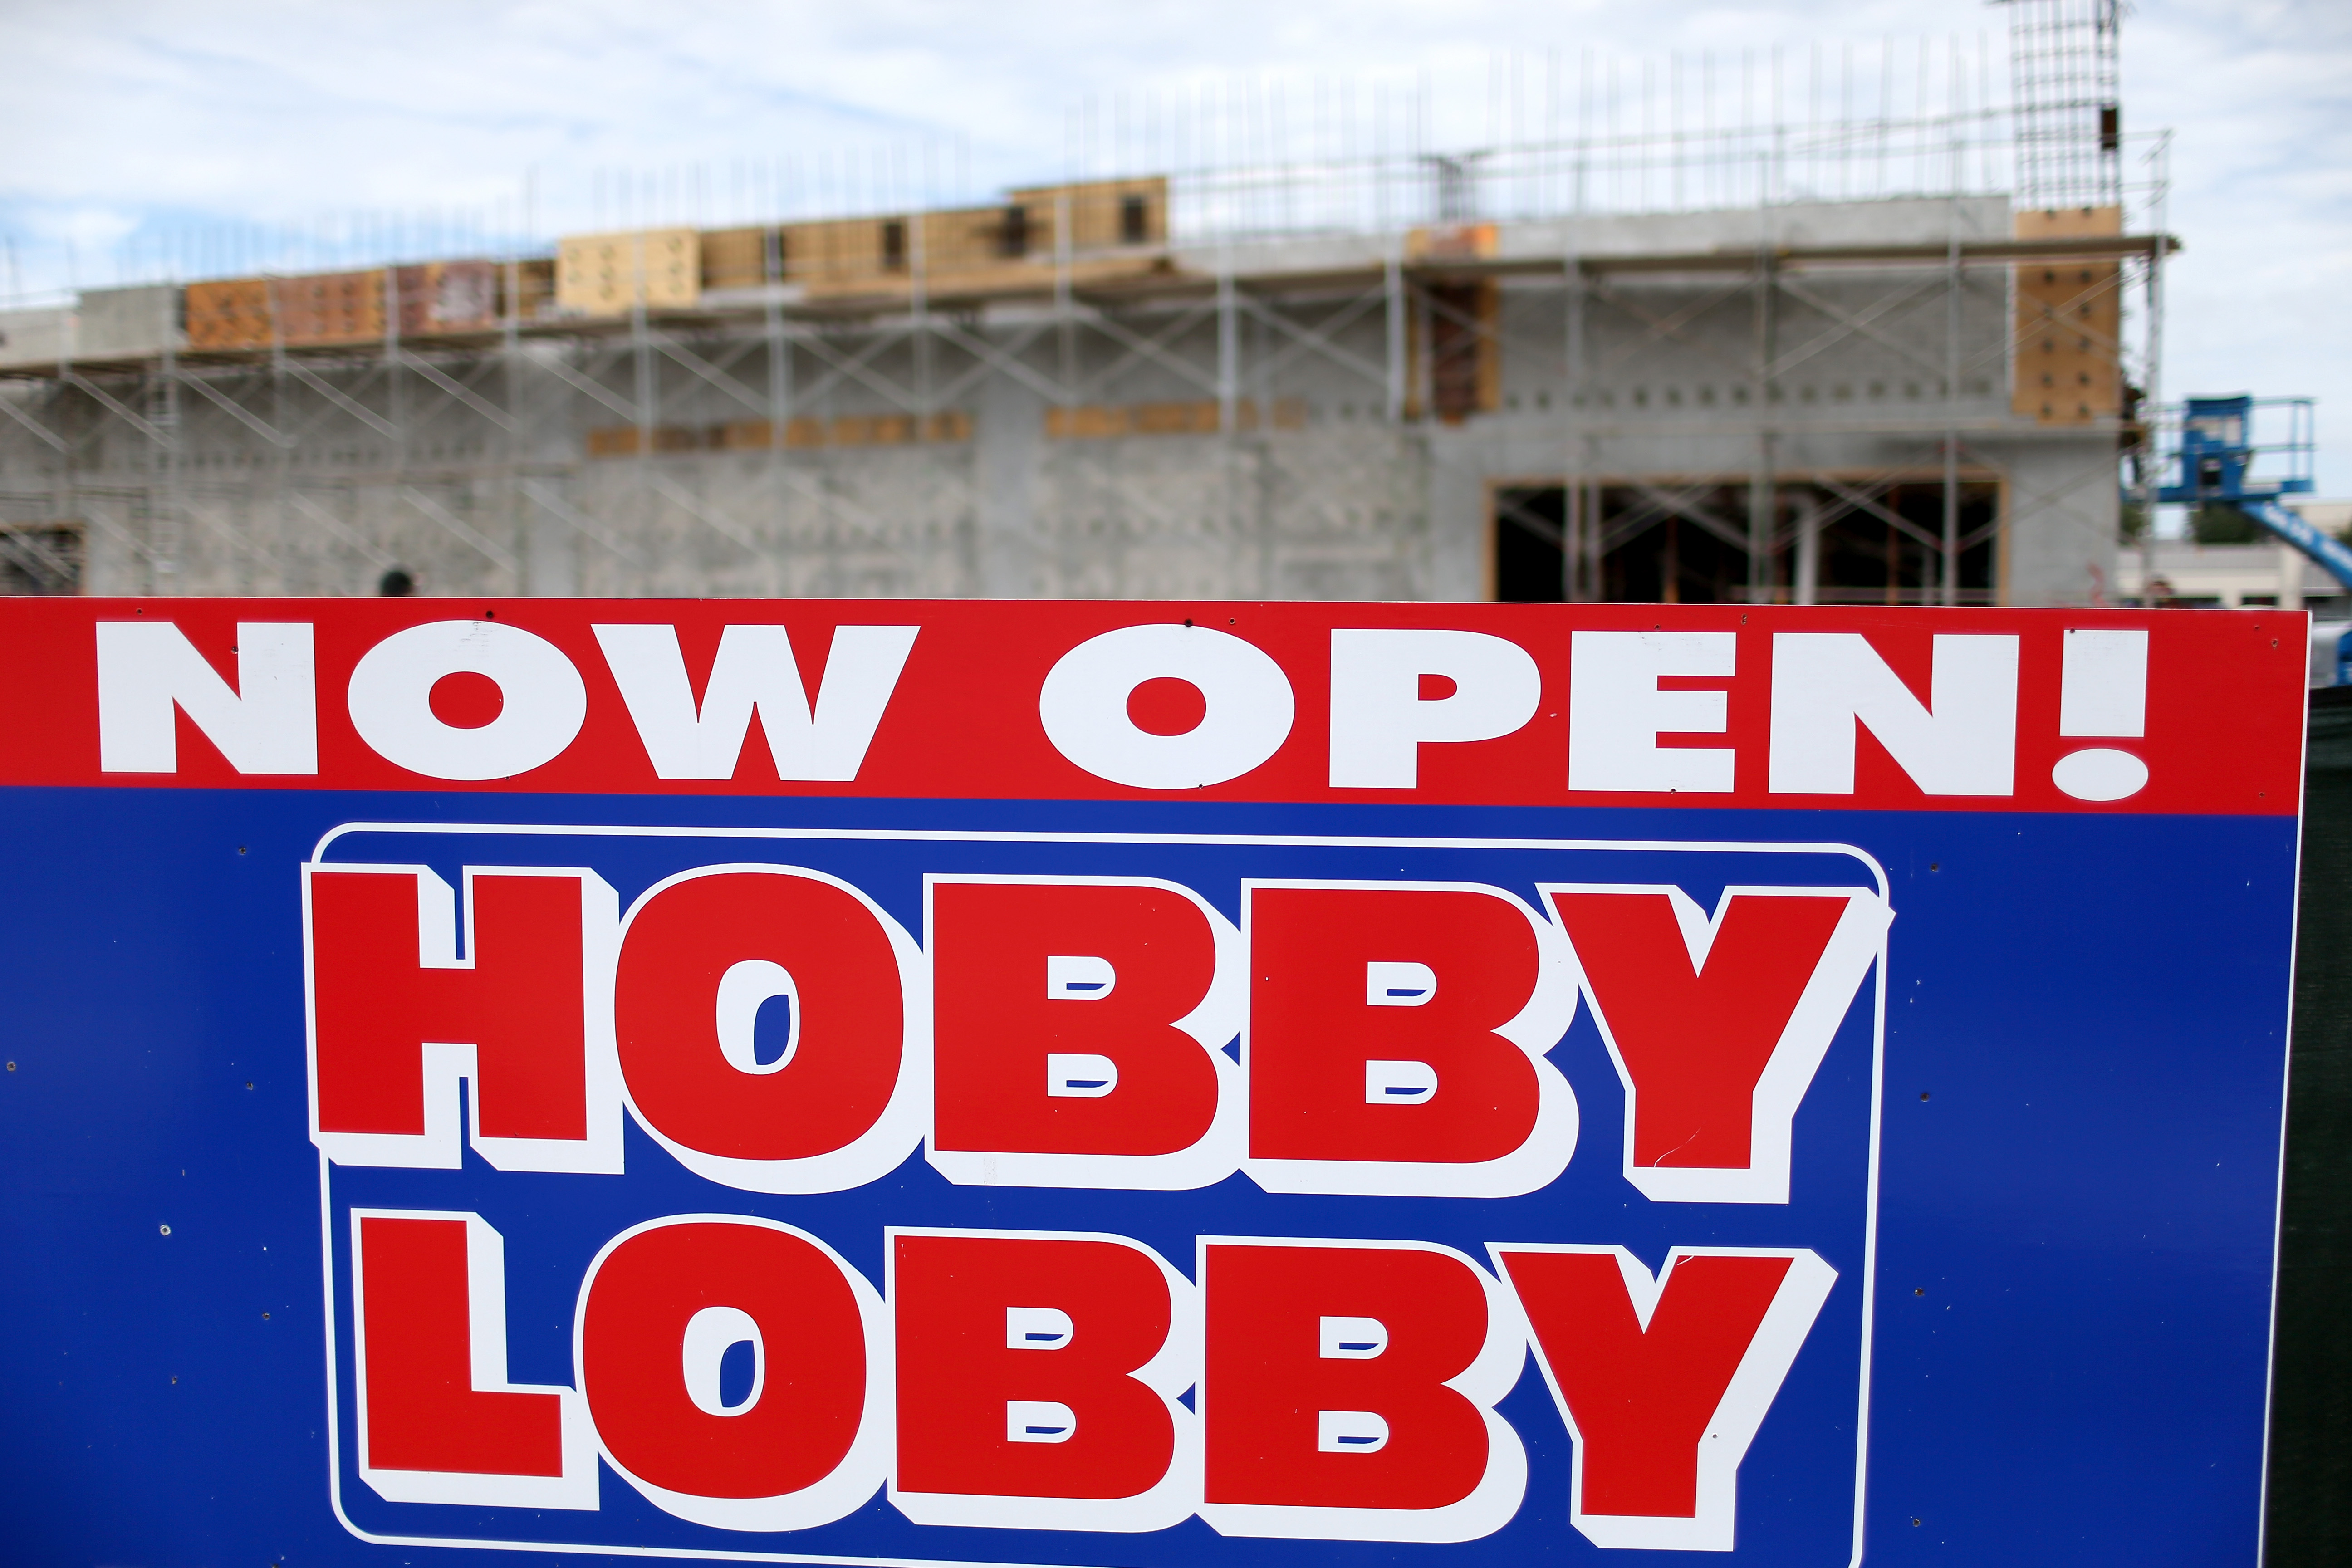 A sign stands near a newly opened Hobby Lobby store on June 30, 2014 in Plantation, Florida. (Photo by Joe Raedle/Getty Images)